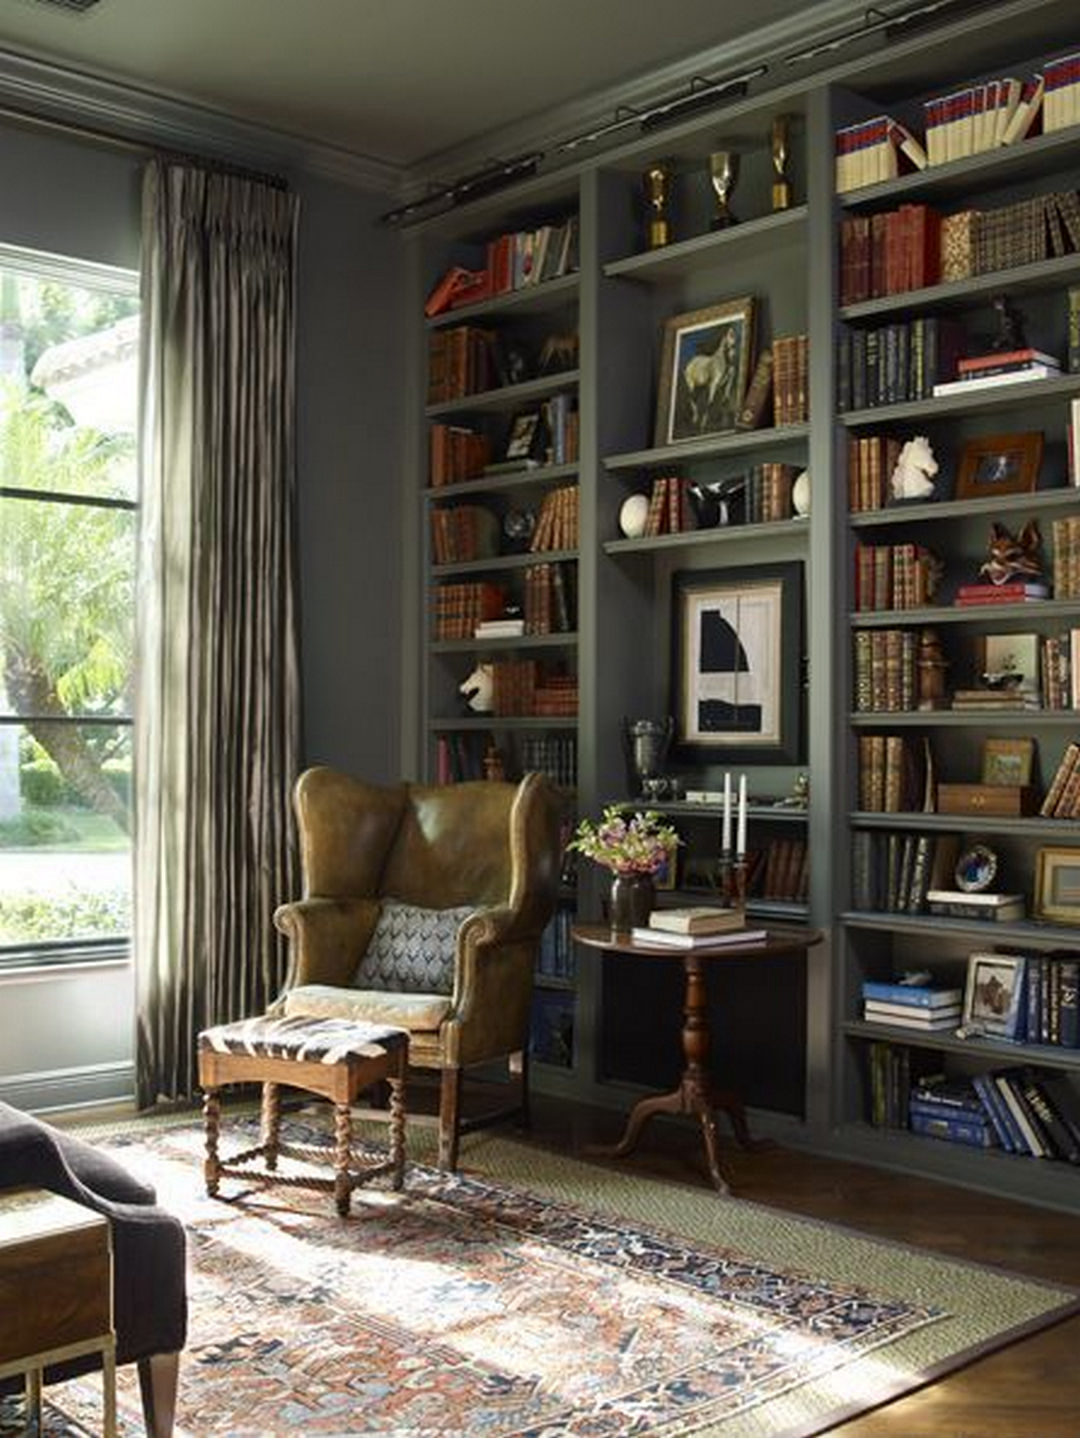 Home Library Room: Lake House: An Atypical, Modern Home With Expressive